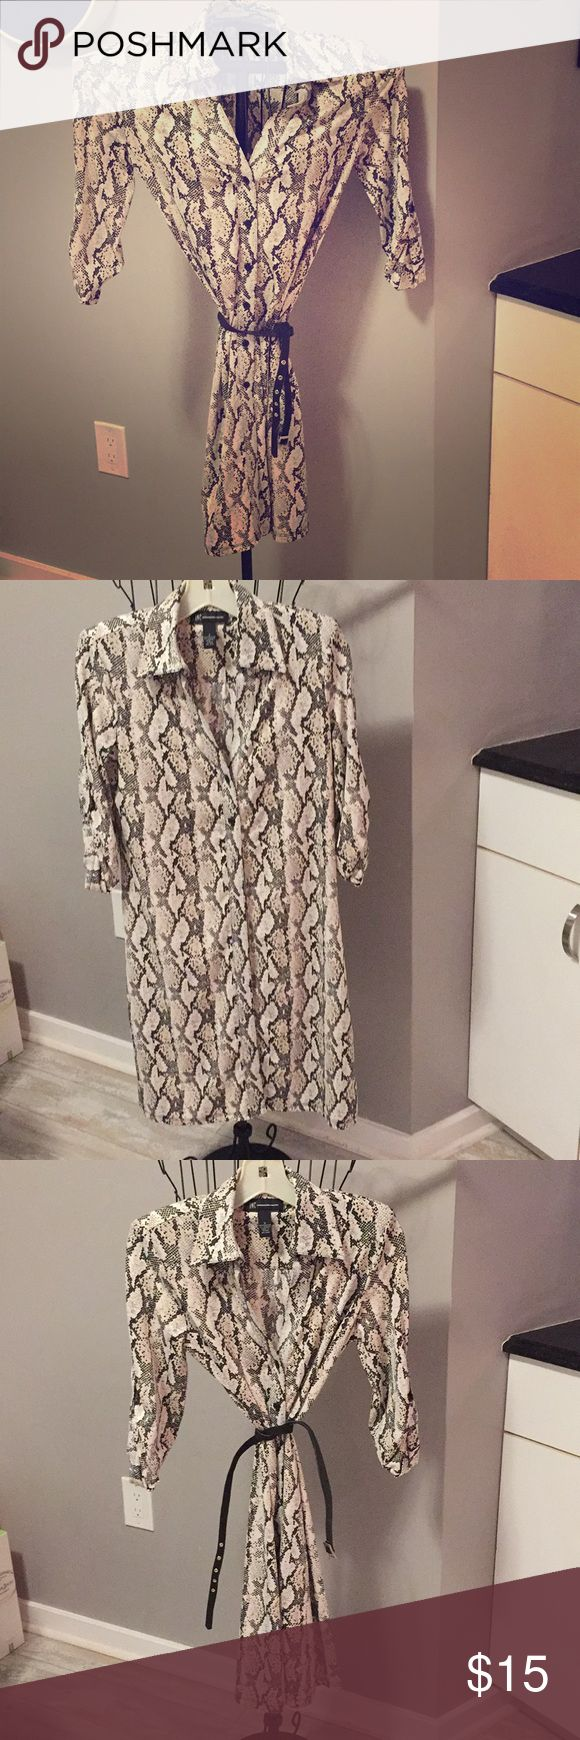 INC dress INC dress . Button down shirt style . Python print . Did not come with belt but I wire the one shown in pic , will include . Black, cream .  Great work dress . Great condition ! INC Dresses